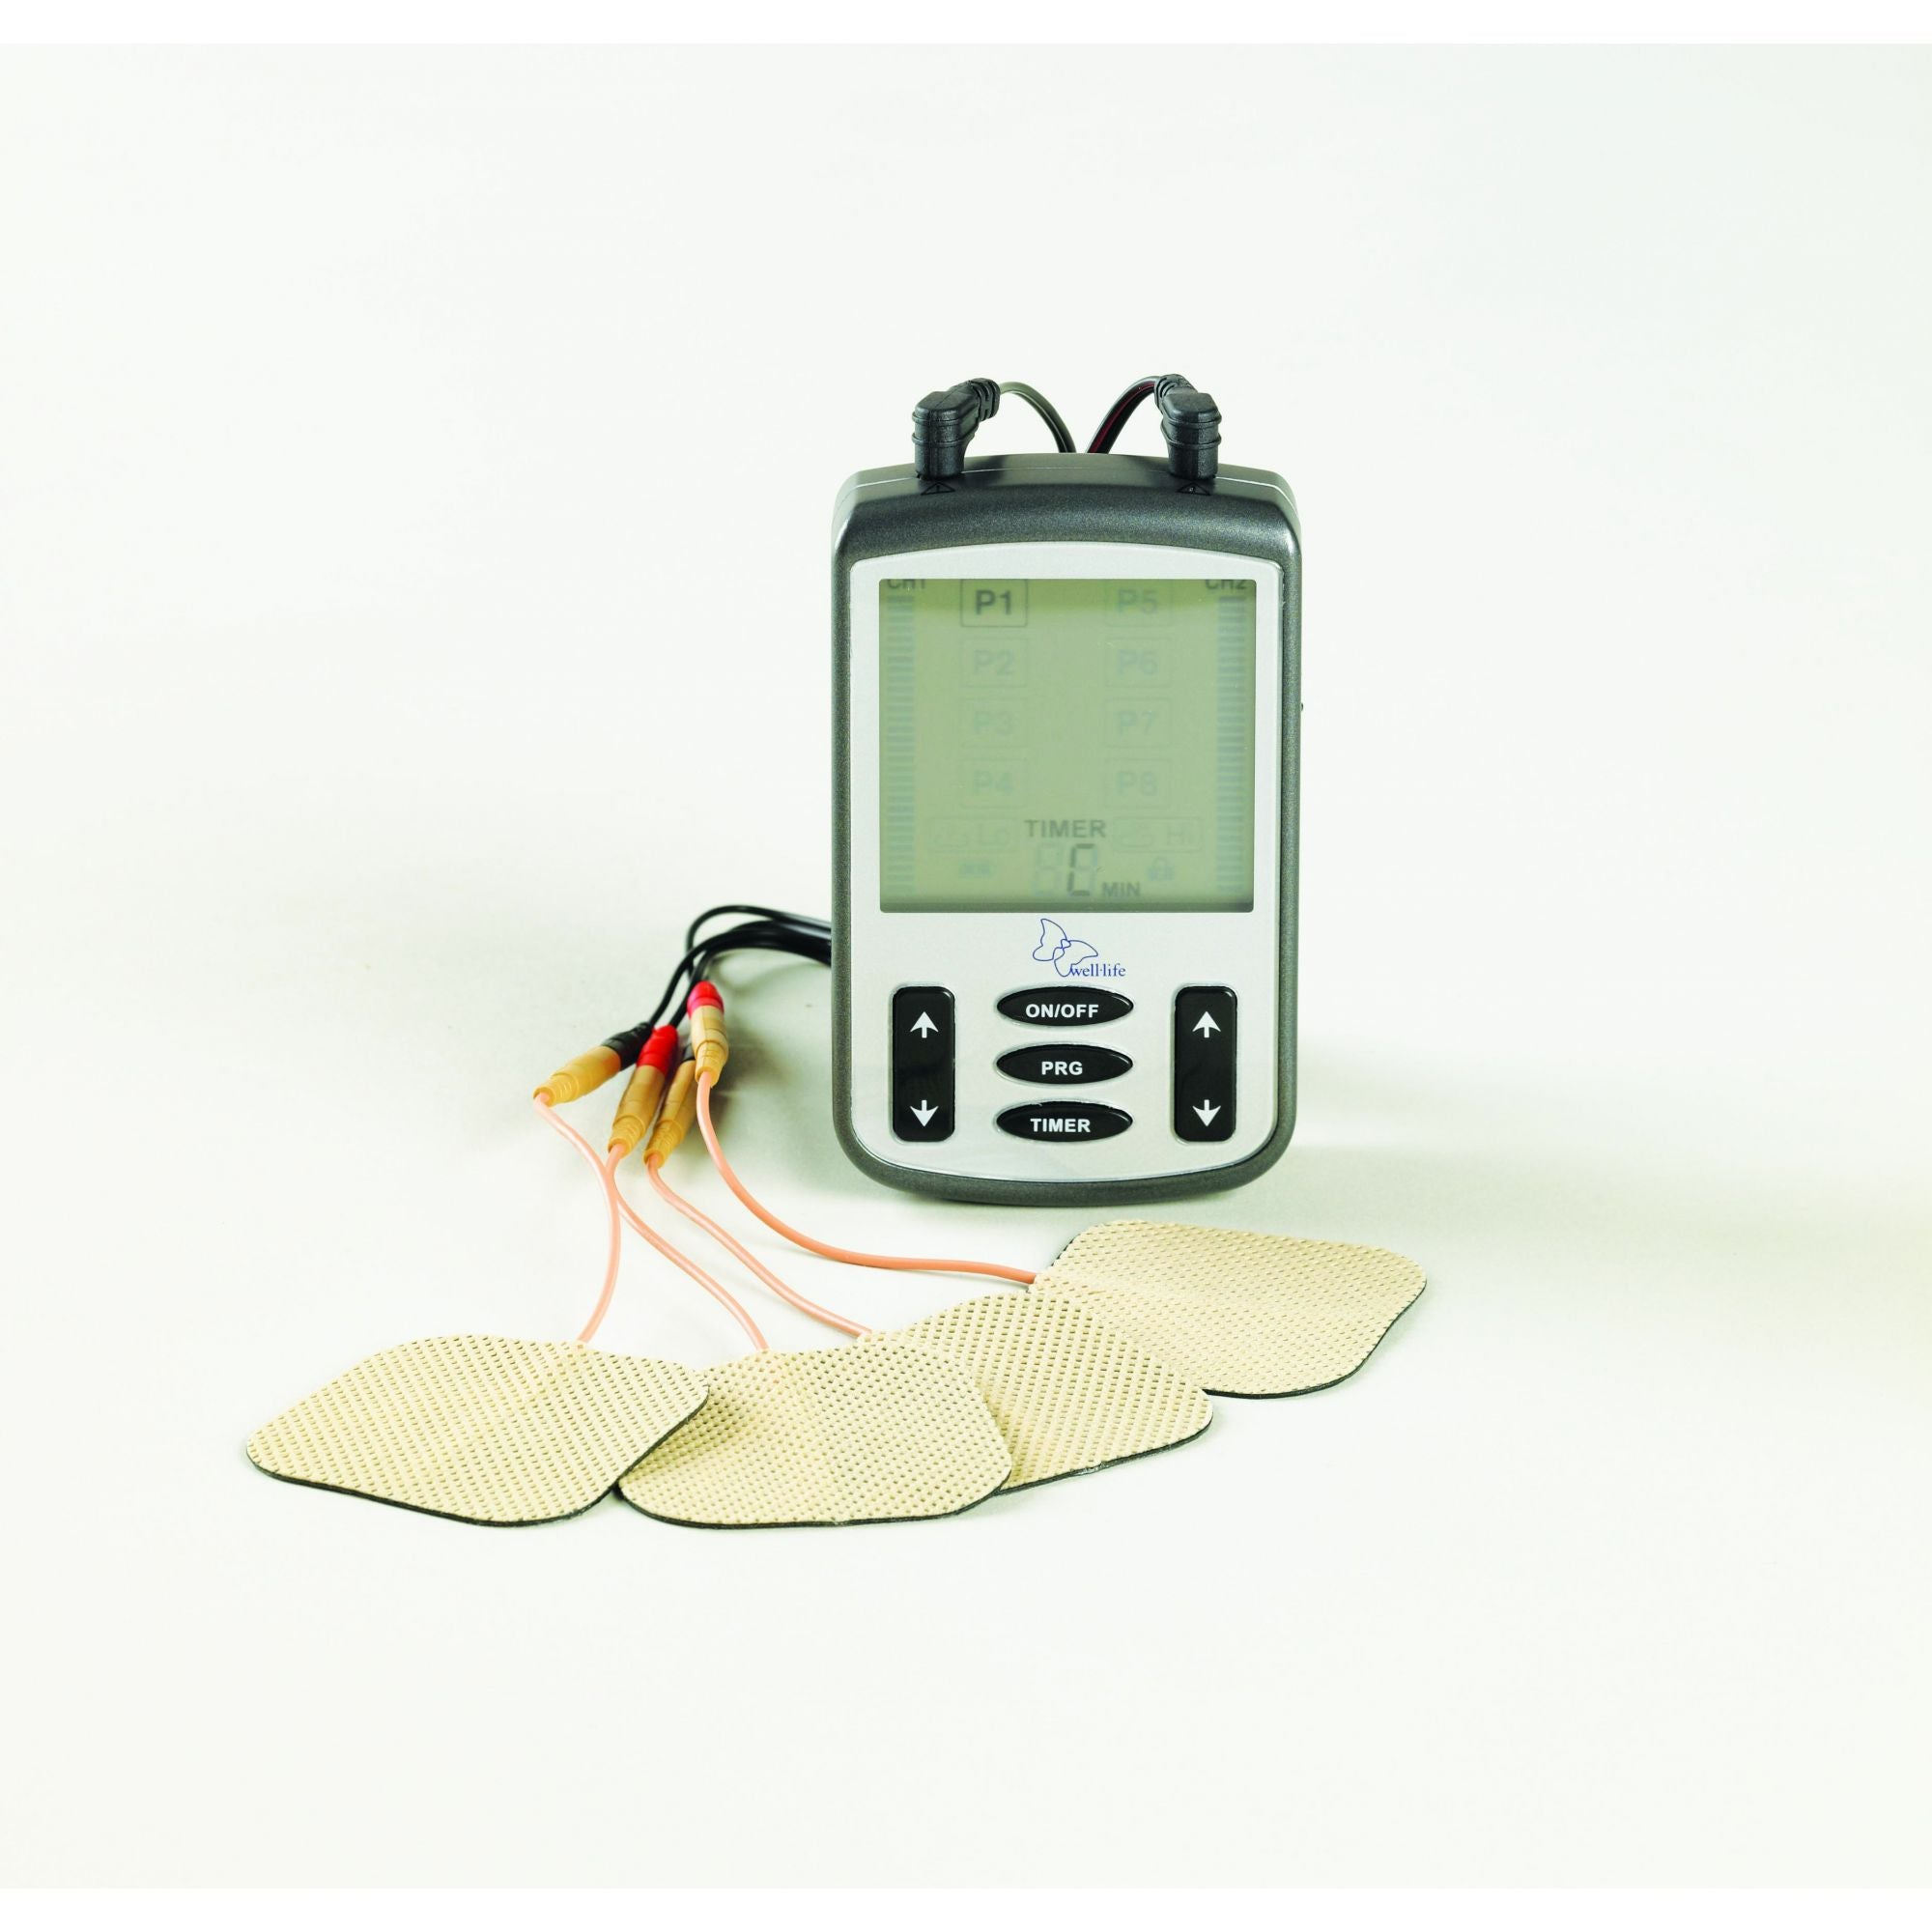 Muscle Stimulators and TENS Machines